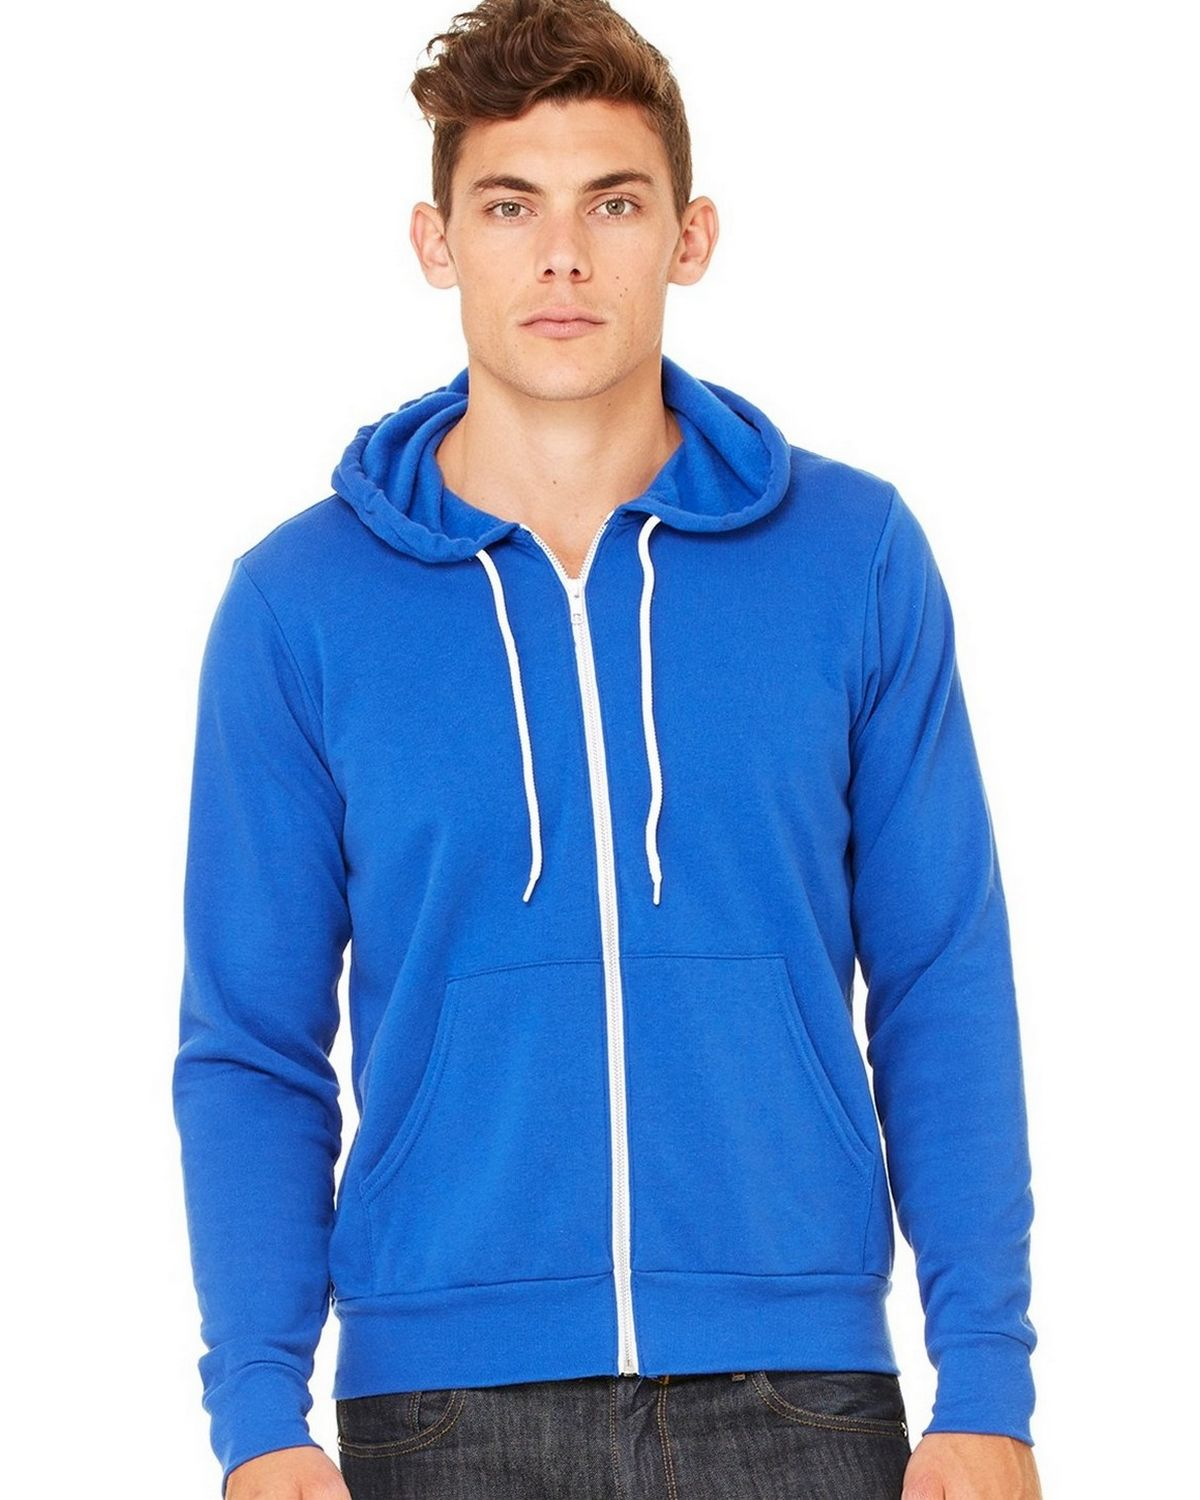 Bella + Canvas C3739 Unisex Full-Zip Hoodie - Heather True Royal - 2X C3739